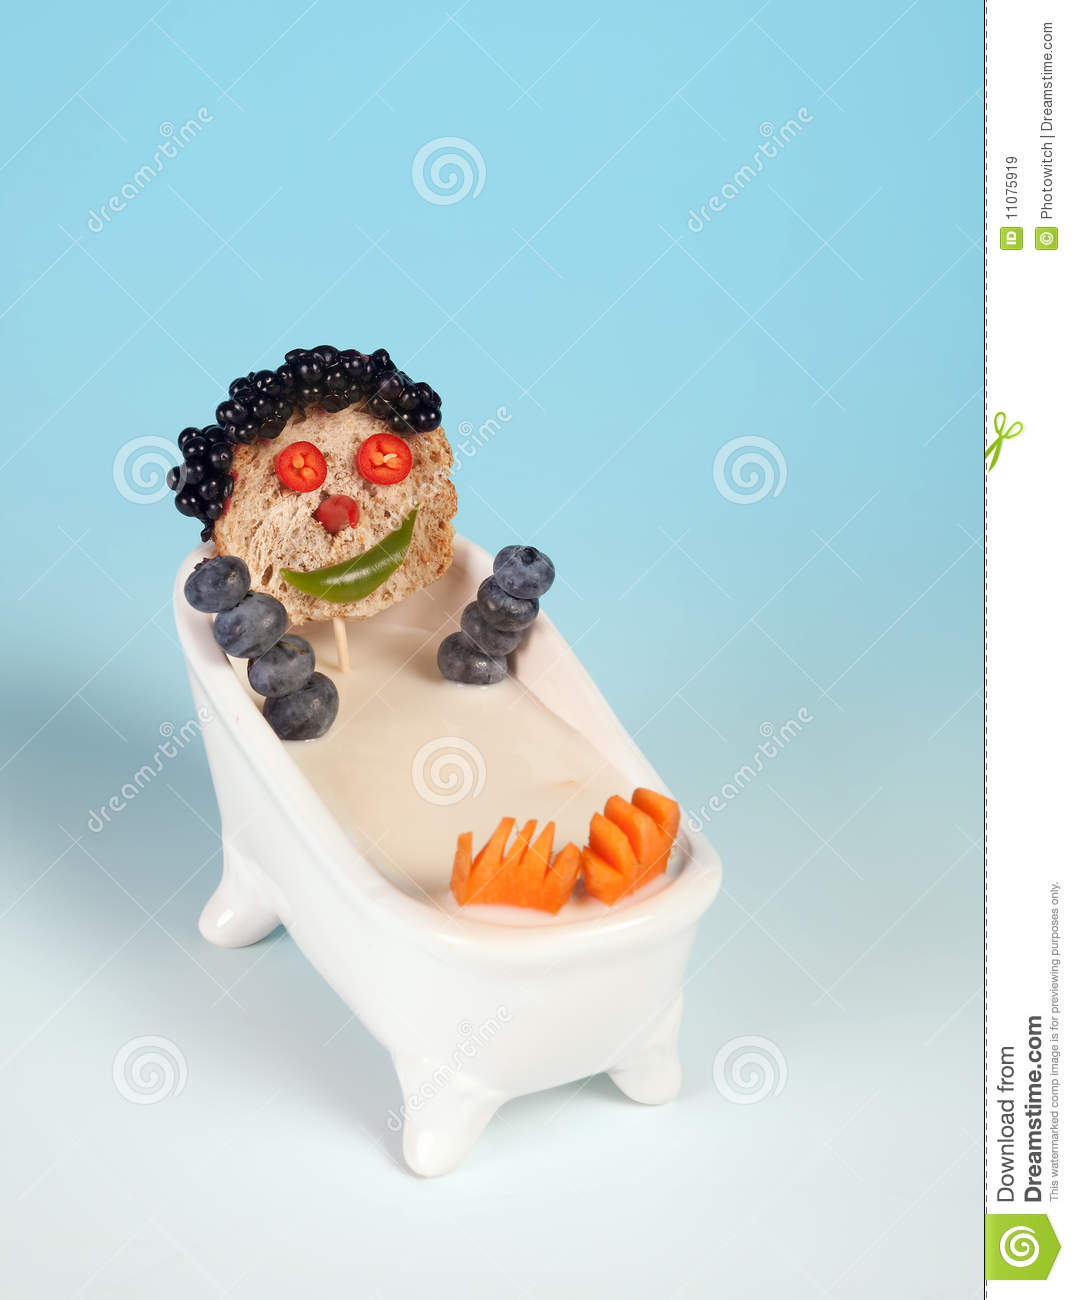 funny food face taking a bath in milk royalty free stock images image 11075919. Black Bedroom Furniture Sets. Home Design Ideas